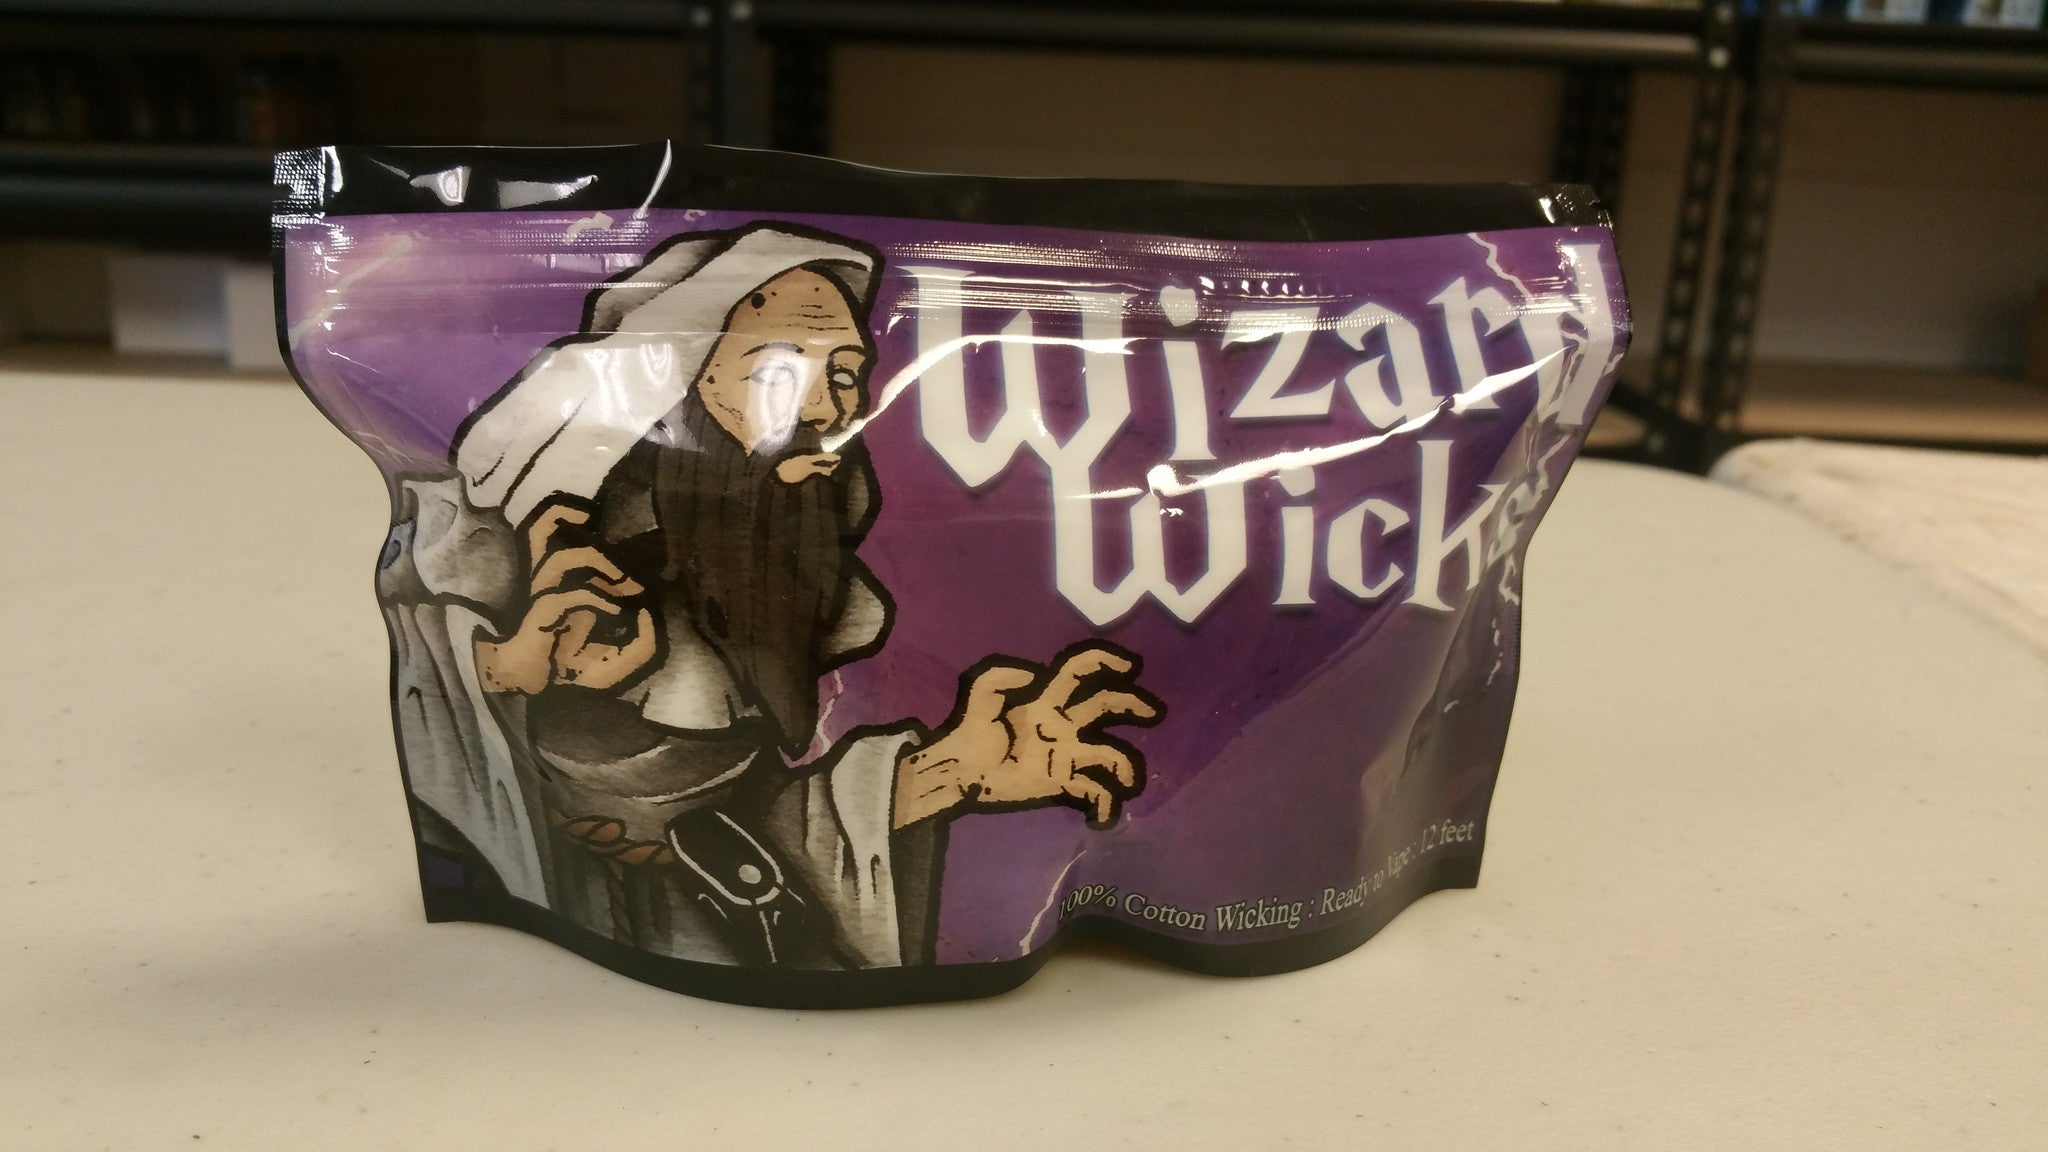 wizard wick 12ft cotton